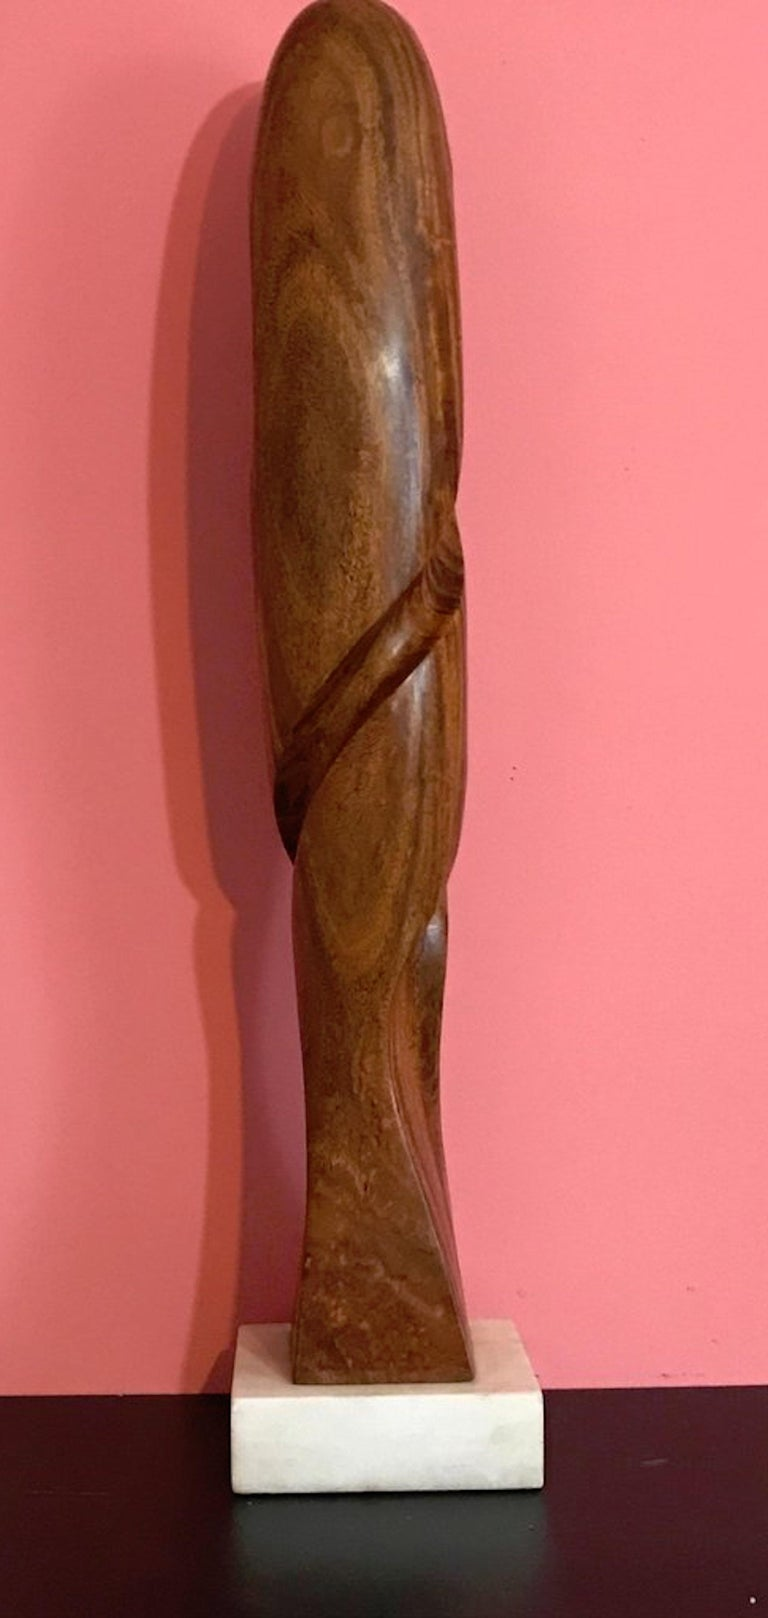 French Carved Modern Wood Sculpture, Attributed to Henry Moretti For Sale